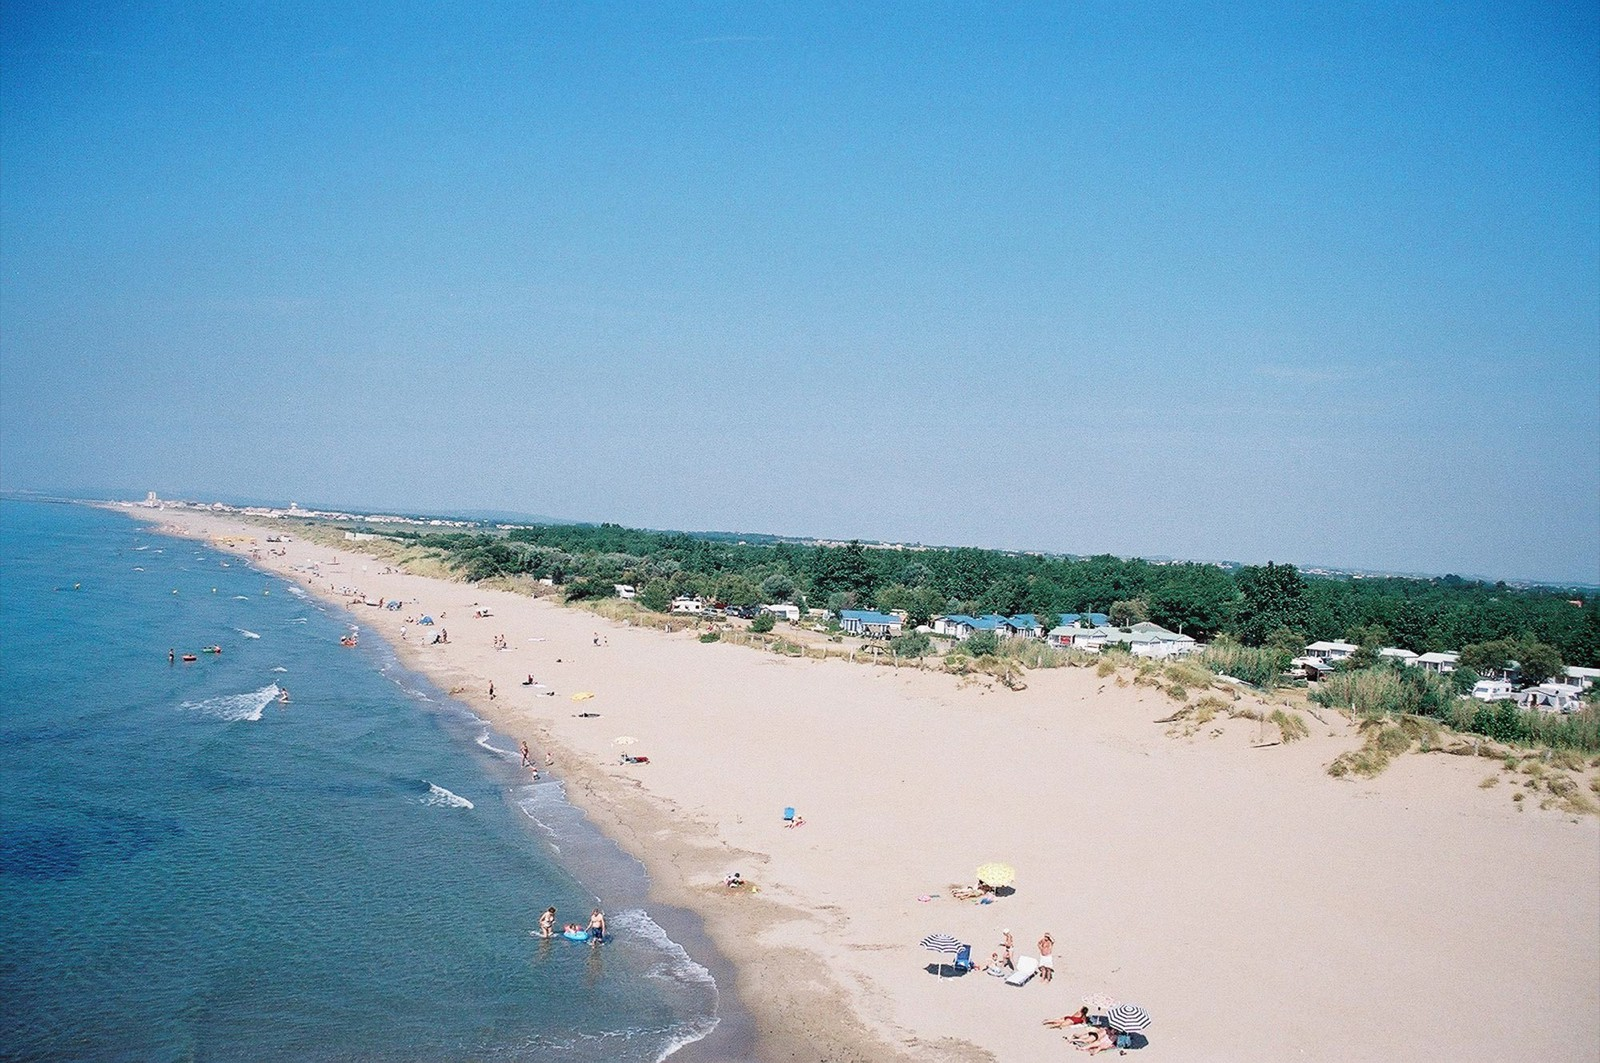 Naturist Beaches South of France - Skinny Dipping